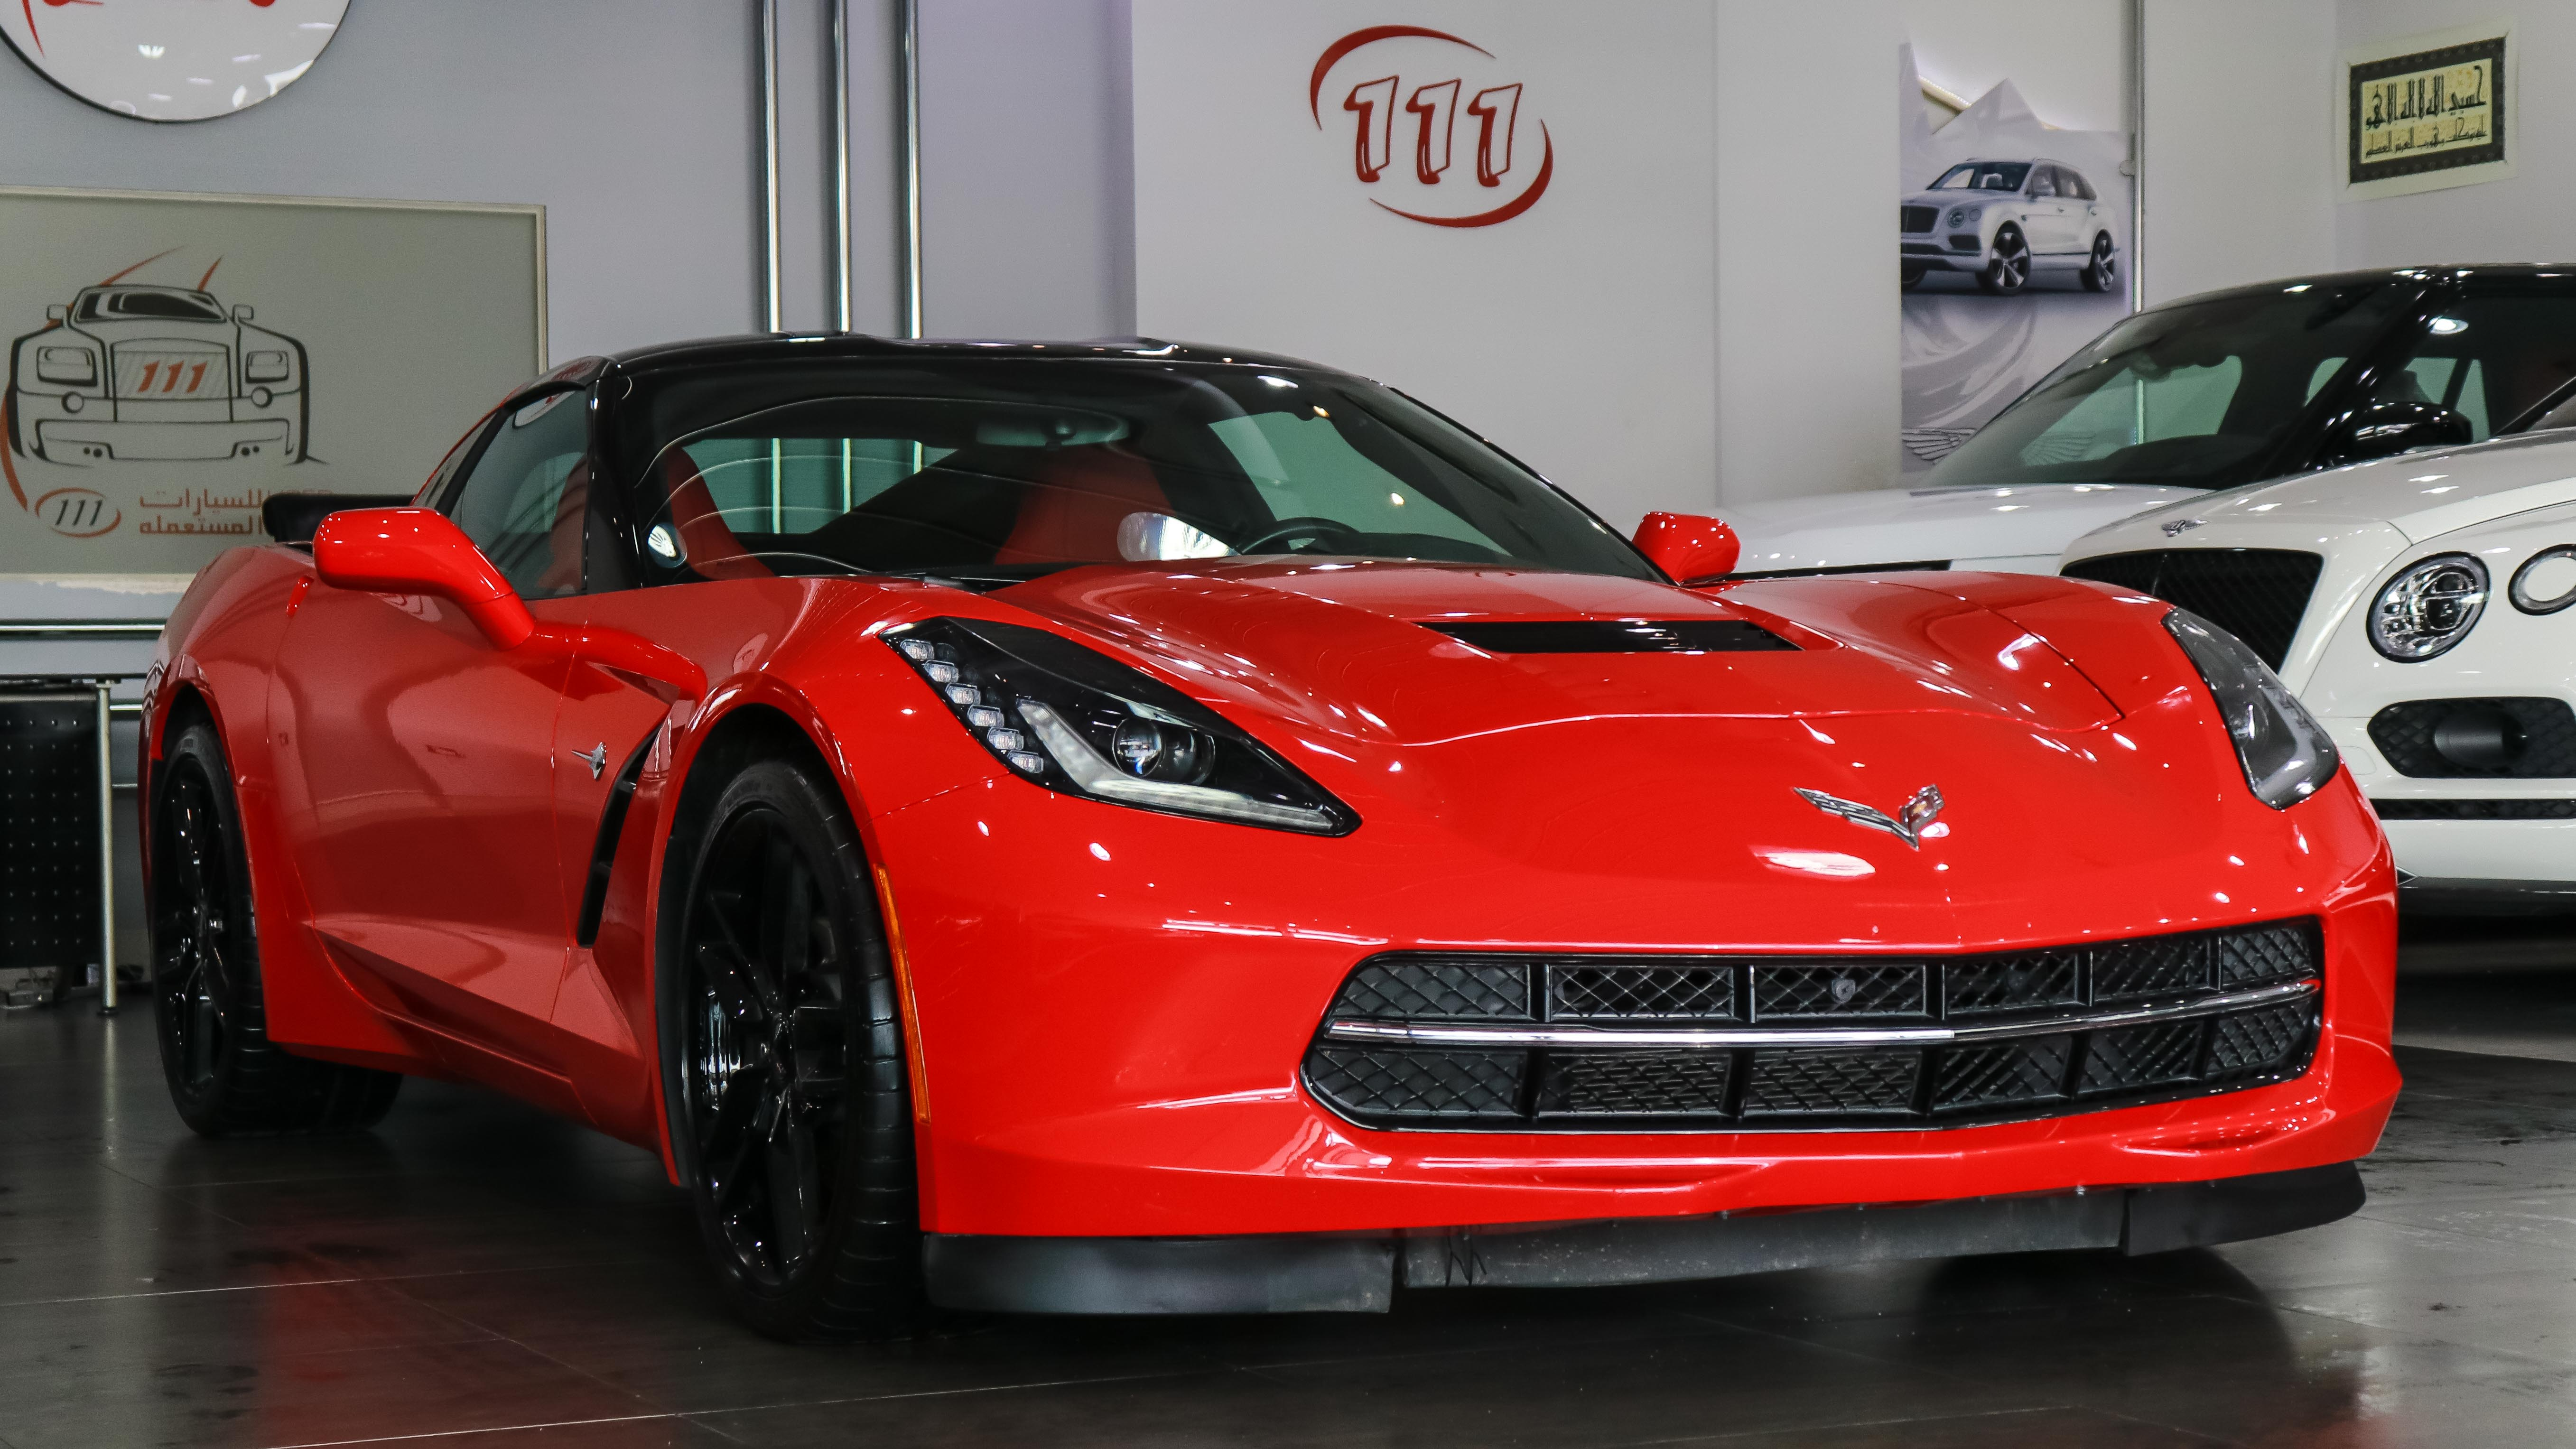 2019-Chevrolet-Corvette-Stingray-6.2-L-V8-Red-Red-import-03.jpg